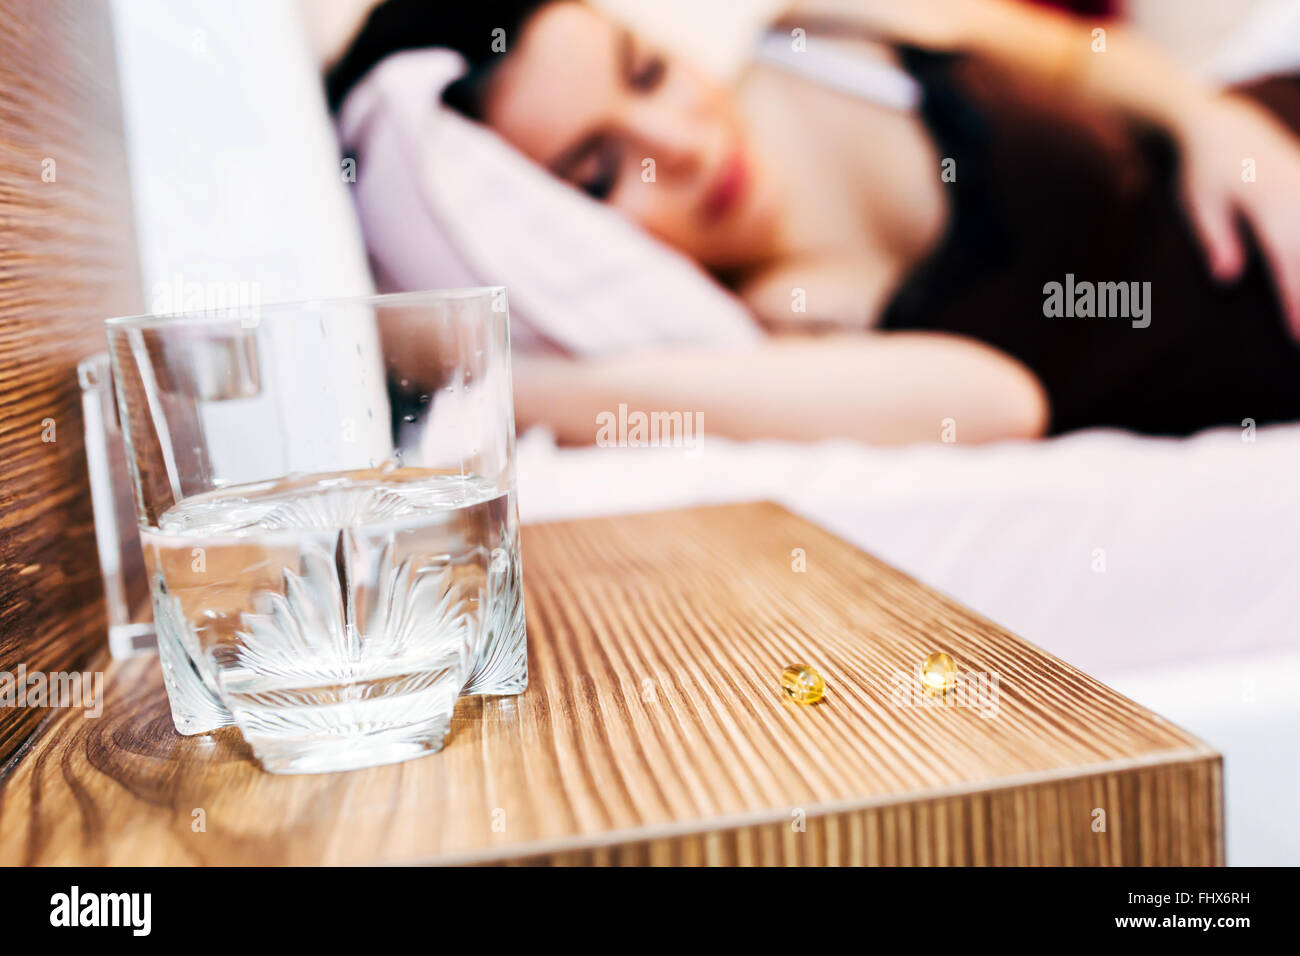 Pregnant woman resting with pills at hand for various aches - Stock Image